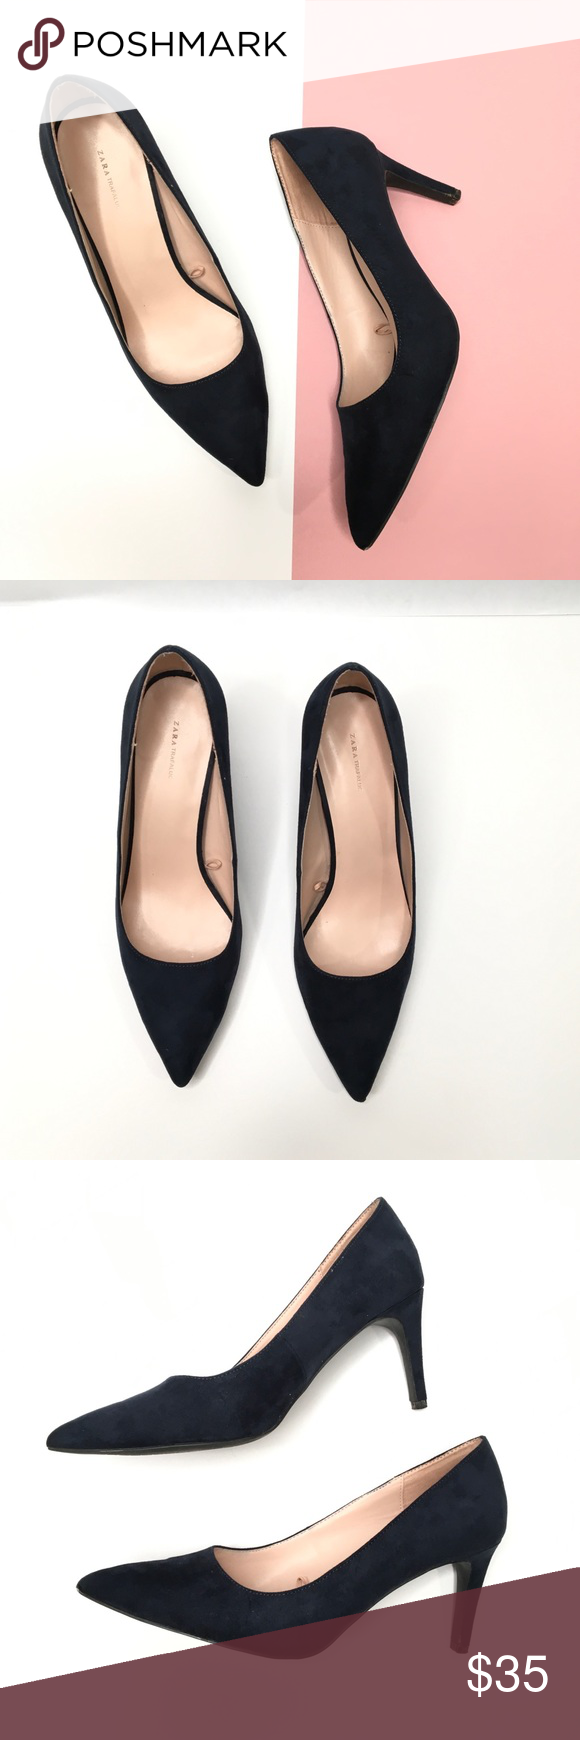 0a1da04387d Zara Trafaluc Navy Suede Pointed Toe Pumps Excellent used condition ...